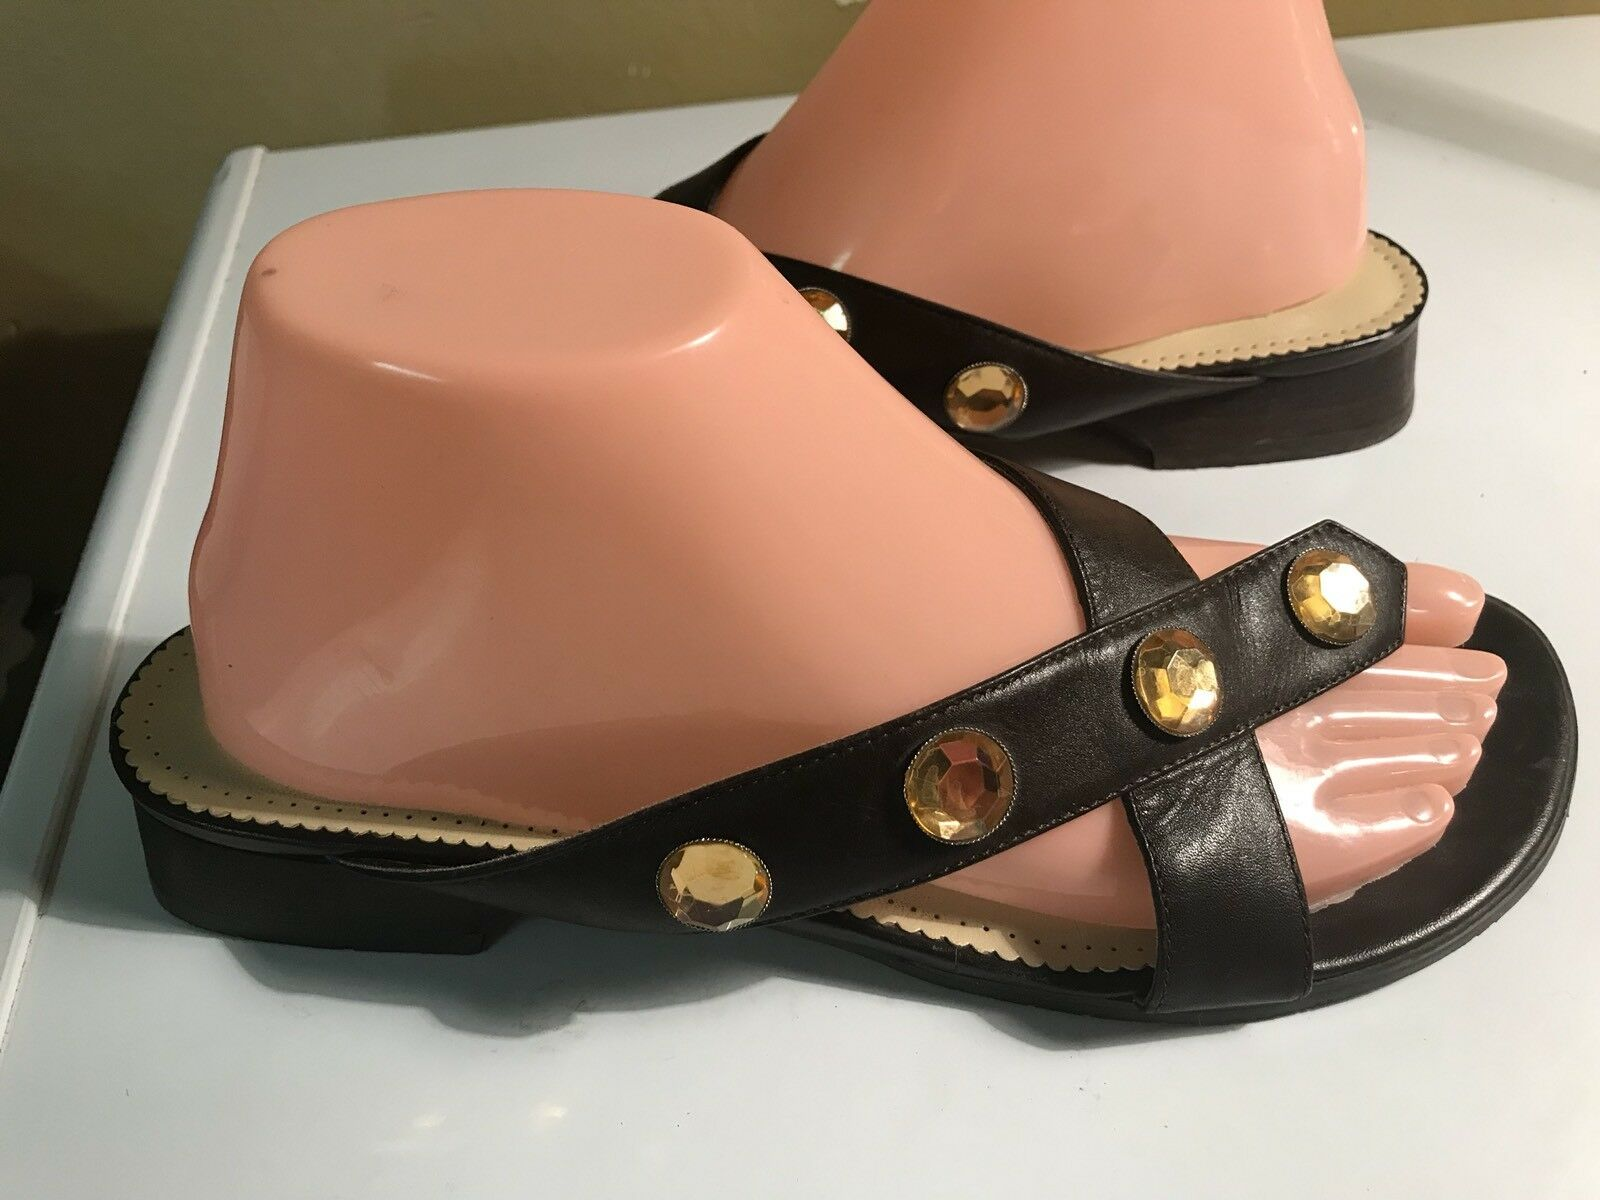 Etienne Aigner LEANNA BROWN 8.5M LEATHER SANDALS RHINESTONE SZ 8.5M BROWN 7f88f6